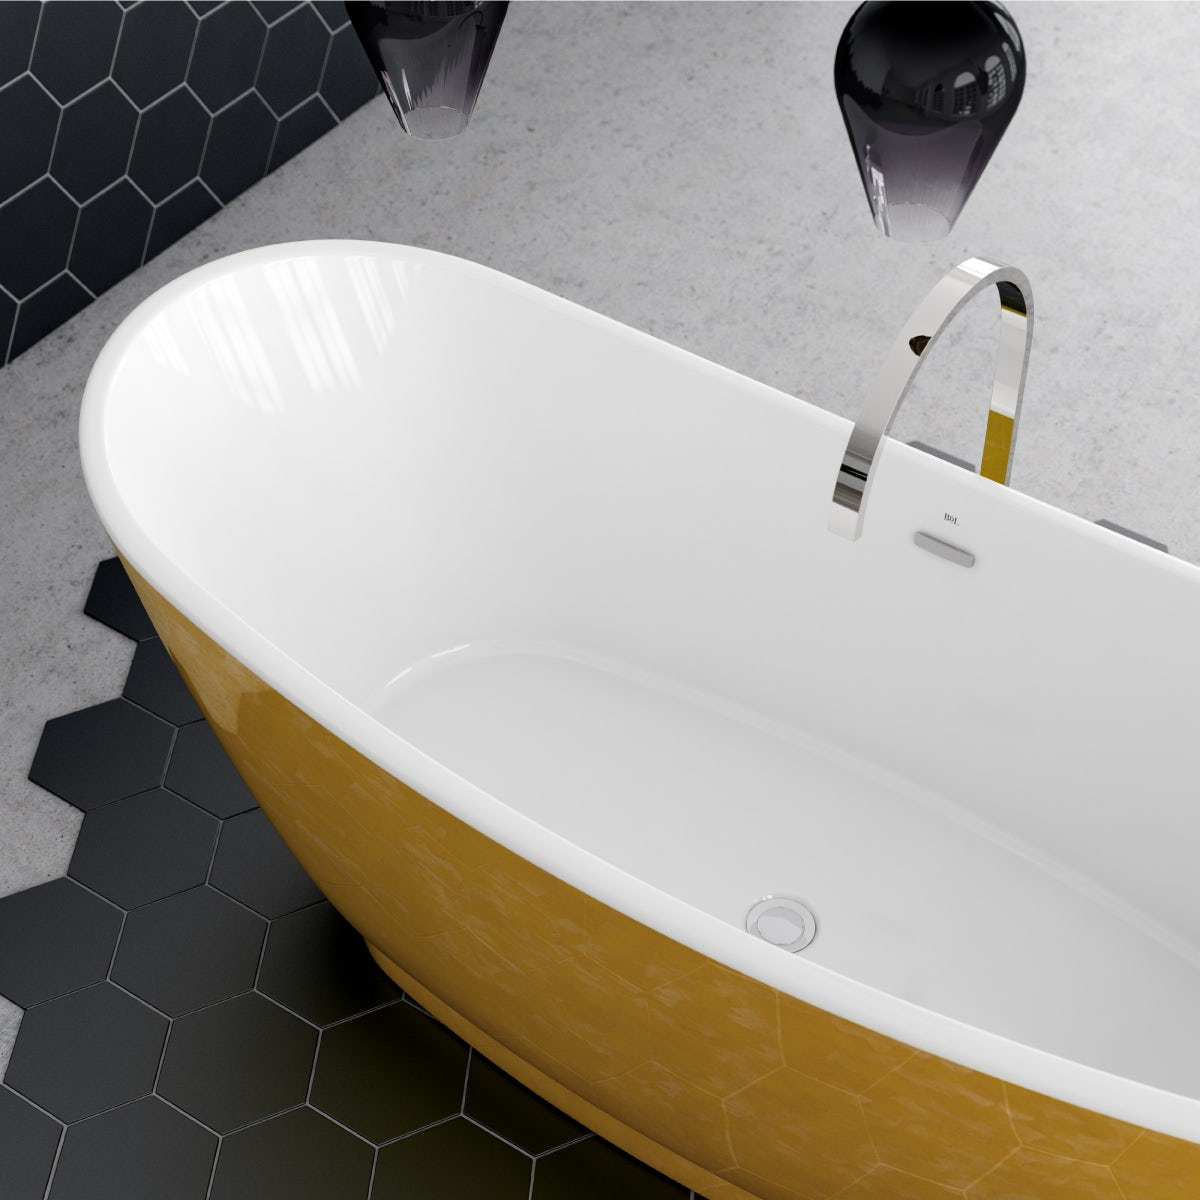 An angled birds-eye view of the of the golden Galvez freestanding bath; with a contemporary Avanzi tall freestanding tap